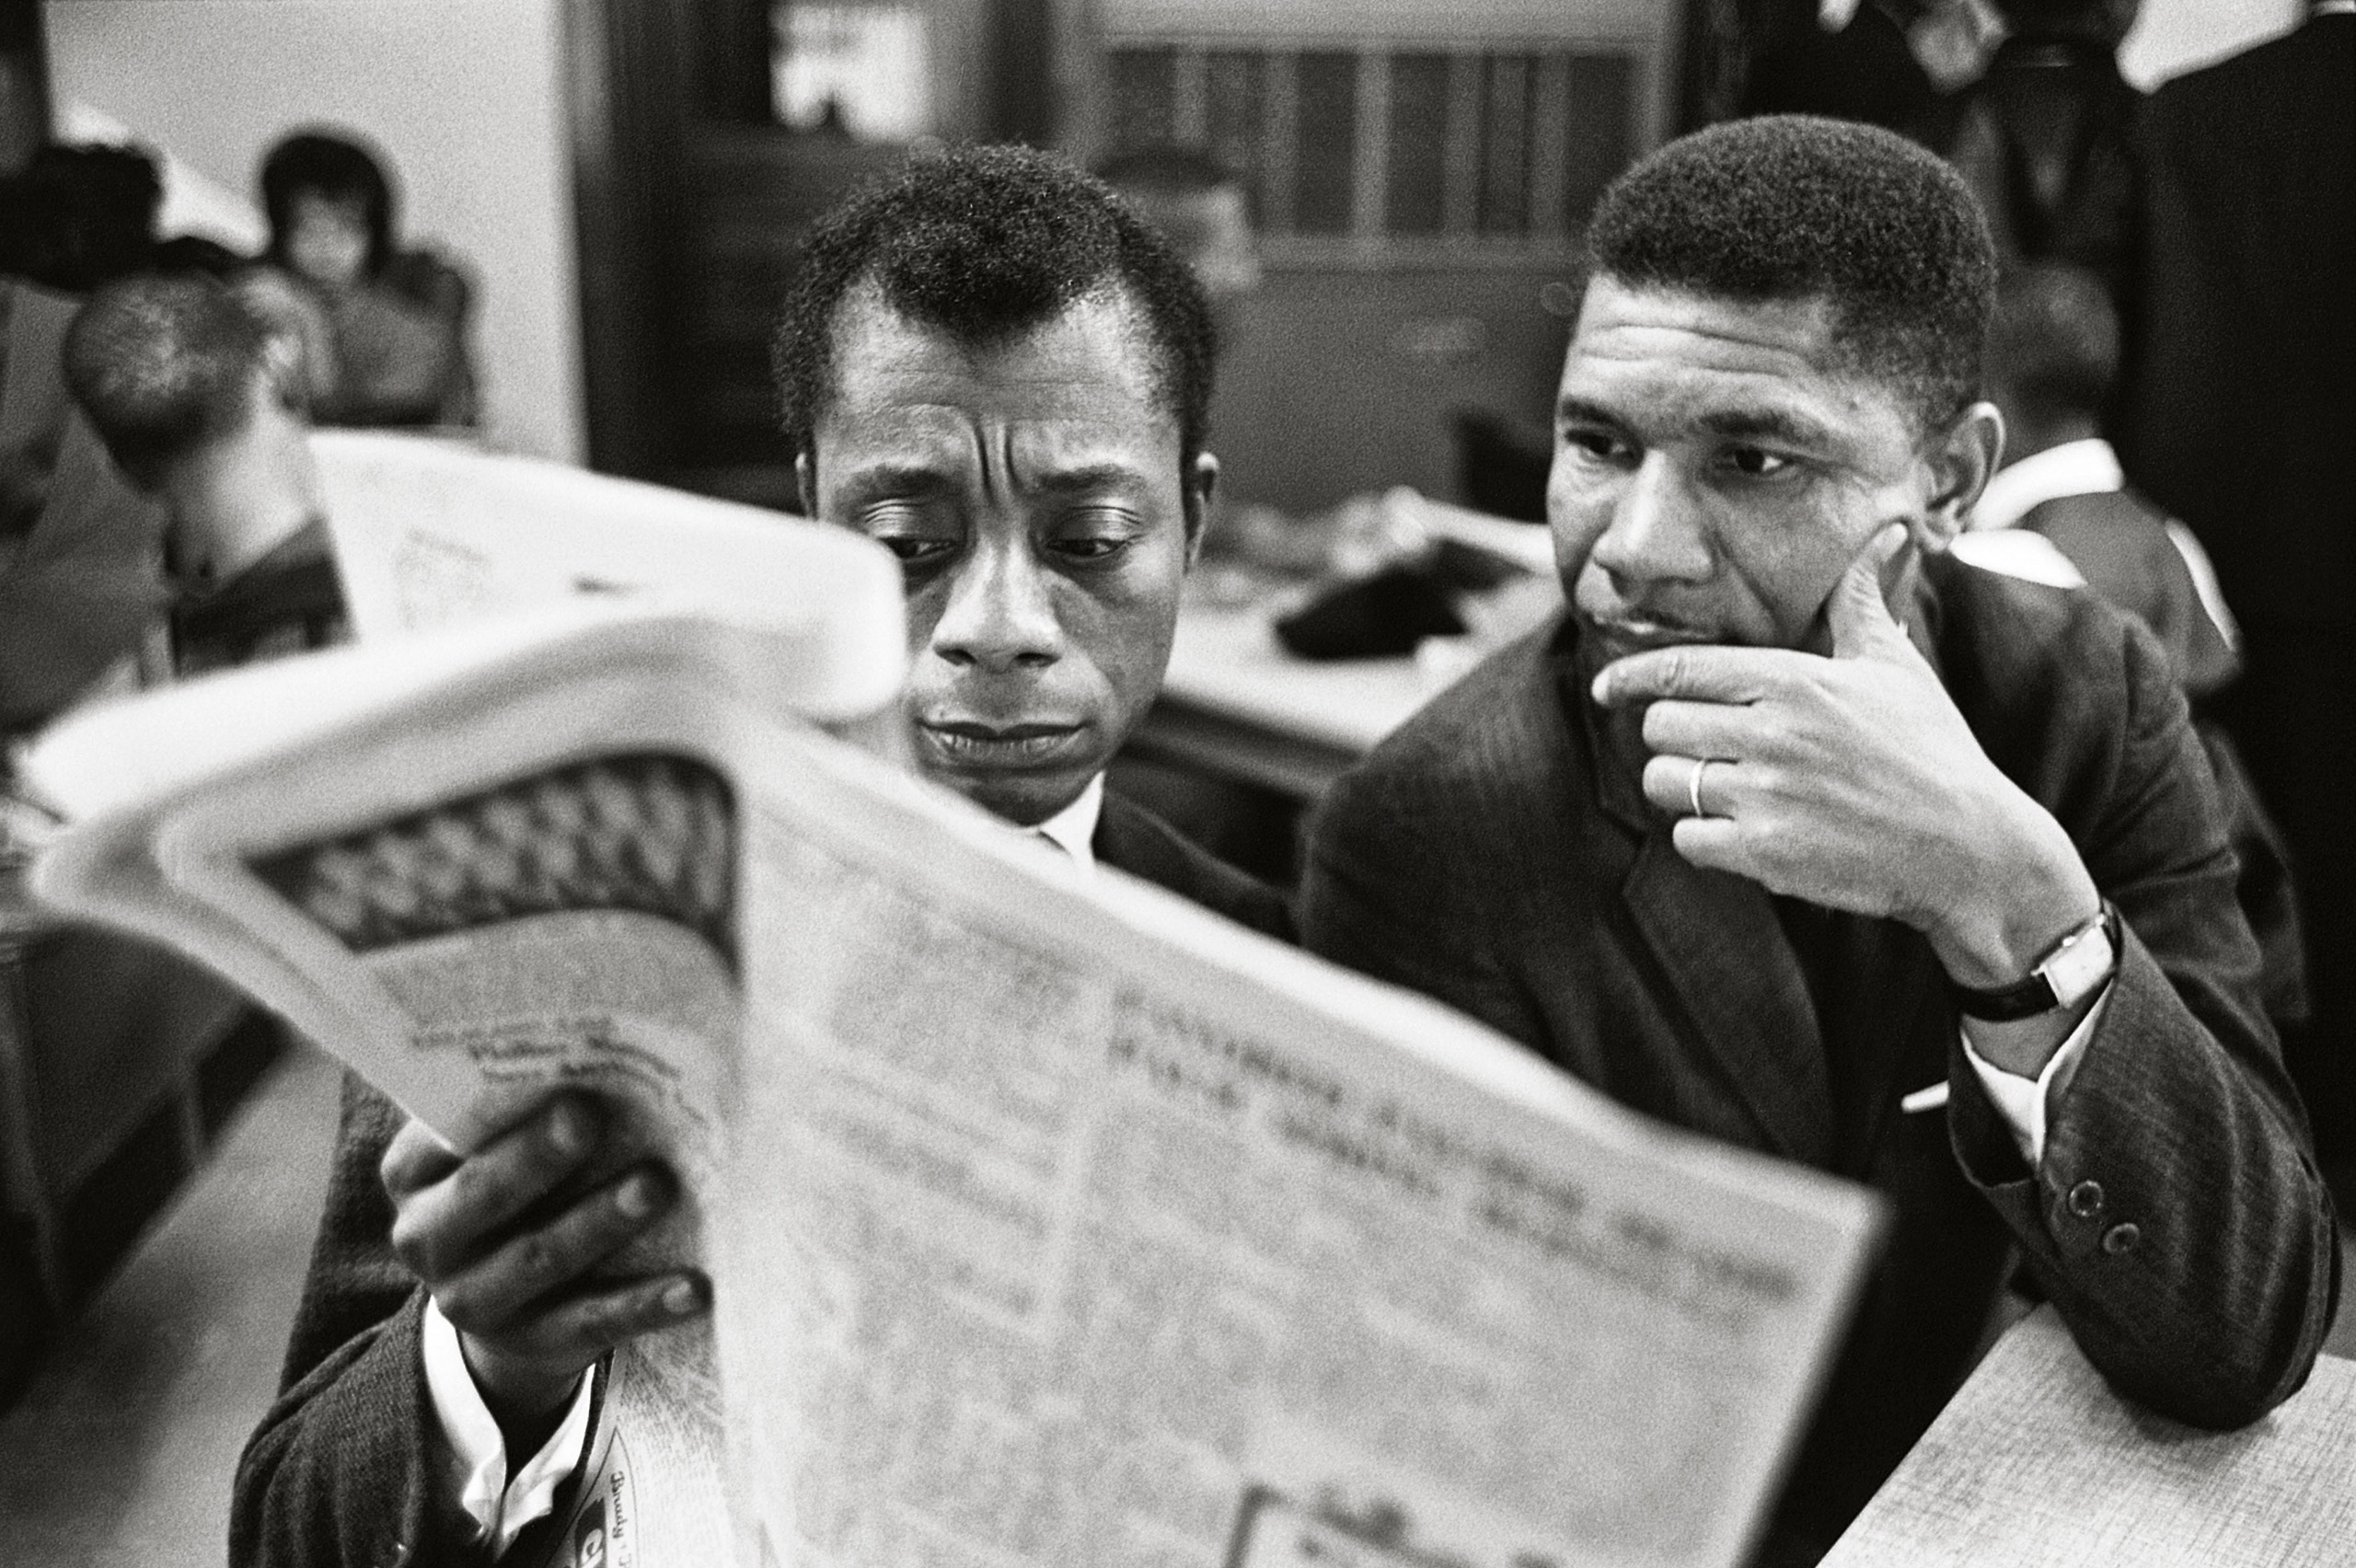 Never Published.                               James Baldwin joined the fight for equality in the South. Mostly, he offered a passionate voice for justice and a plea for                               a nation's salvation. In Mississippi in 1963, he visited the NAACP's Medgar Evers, who was slain later that June,                               following President Kennedy's landmark                               televised address on civil rights. This photo was recently discovered in the                               photographer's contact sheets.